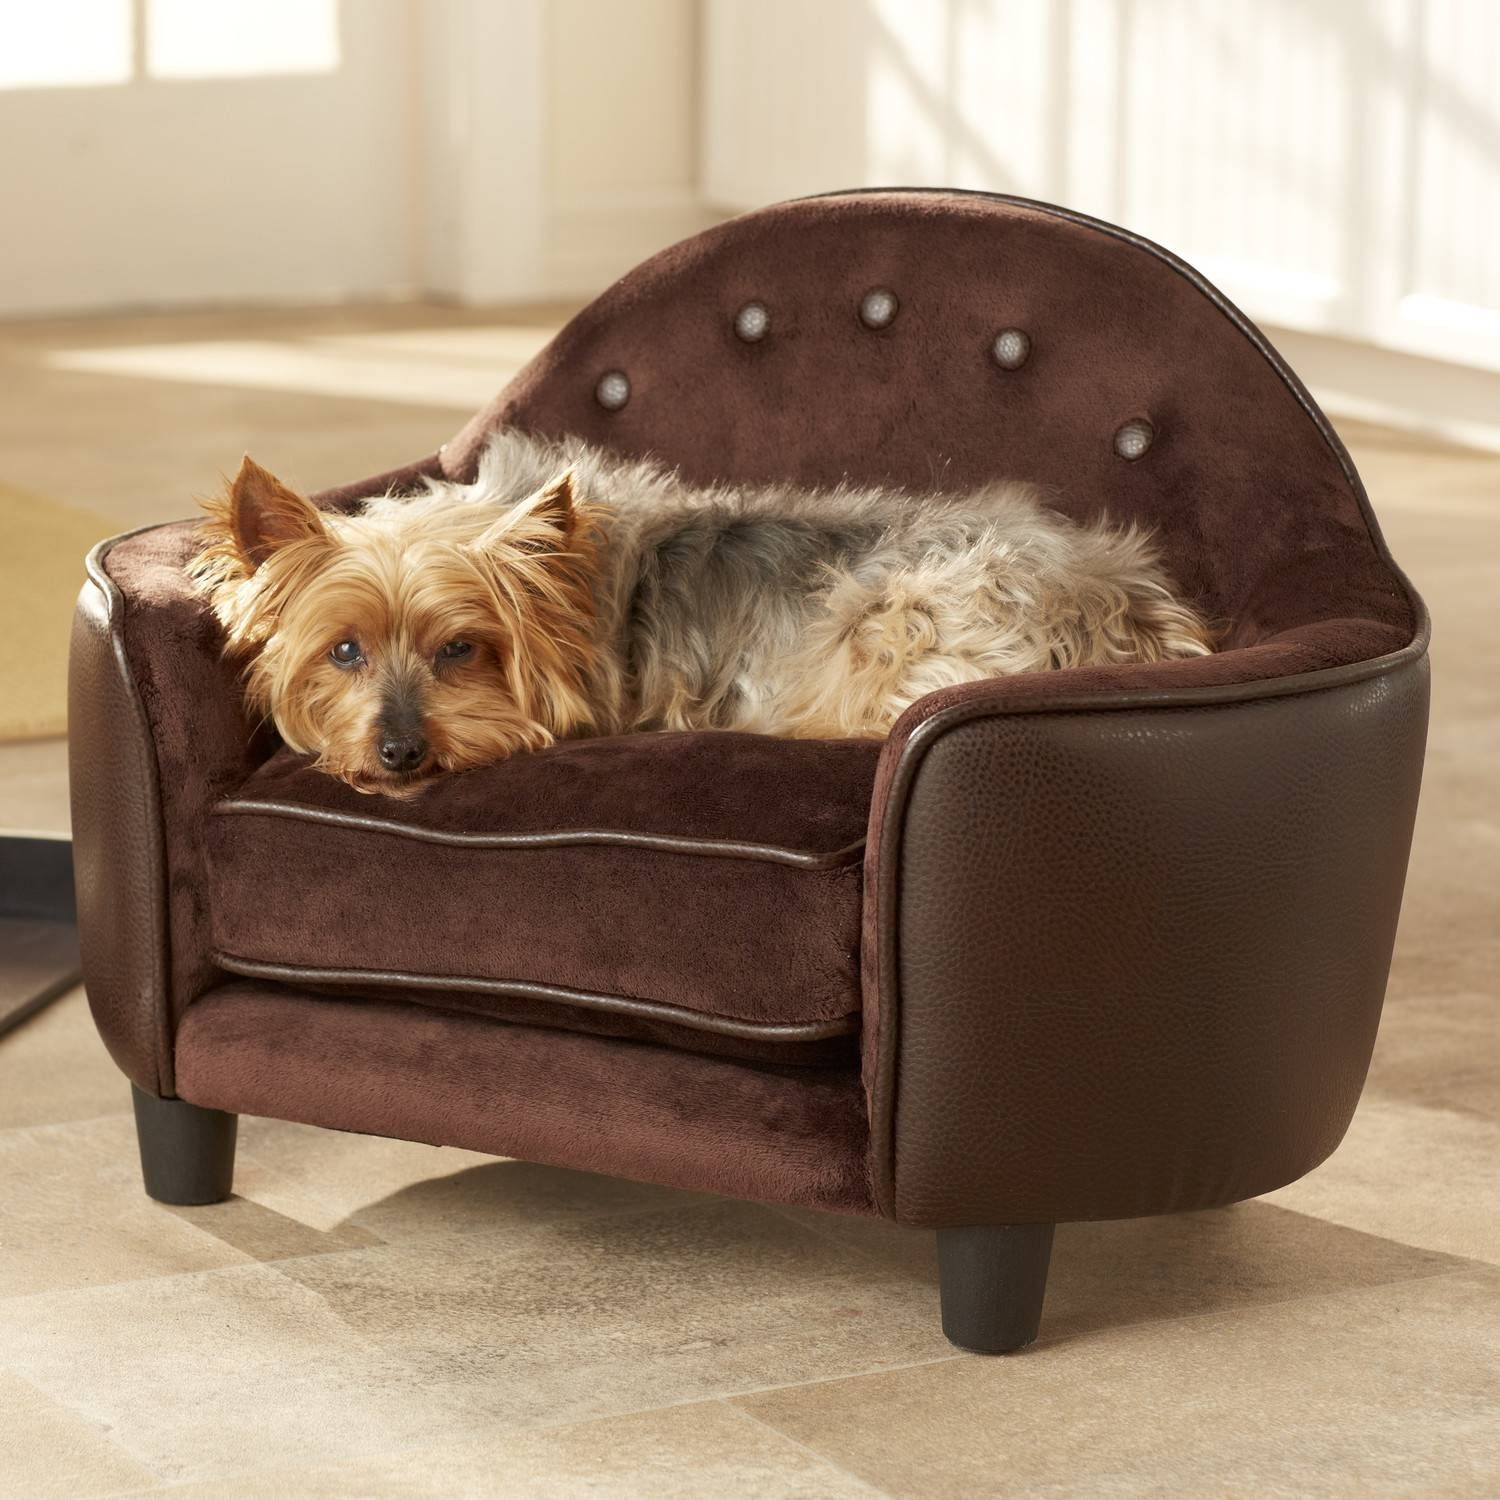 Sofas Center : Windsormediumbrownwithdog Stunning Pet Sofa Picture for Sofas for Dogs (Image 26 of 30)